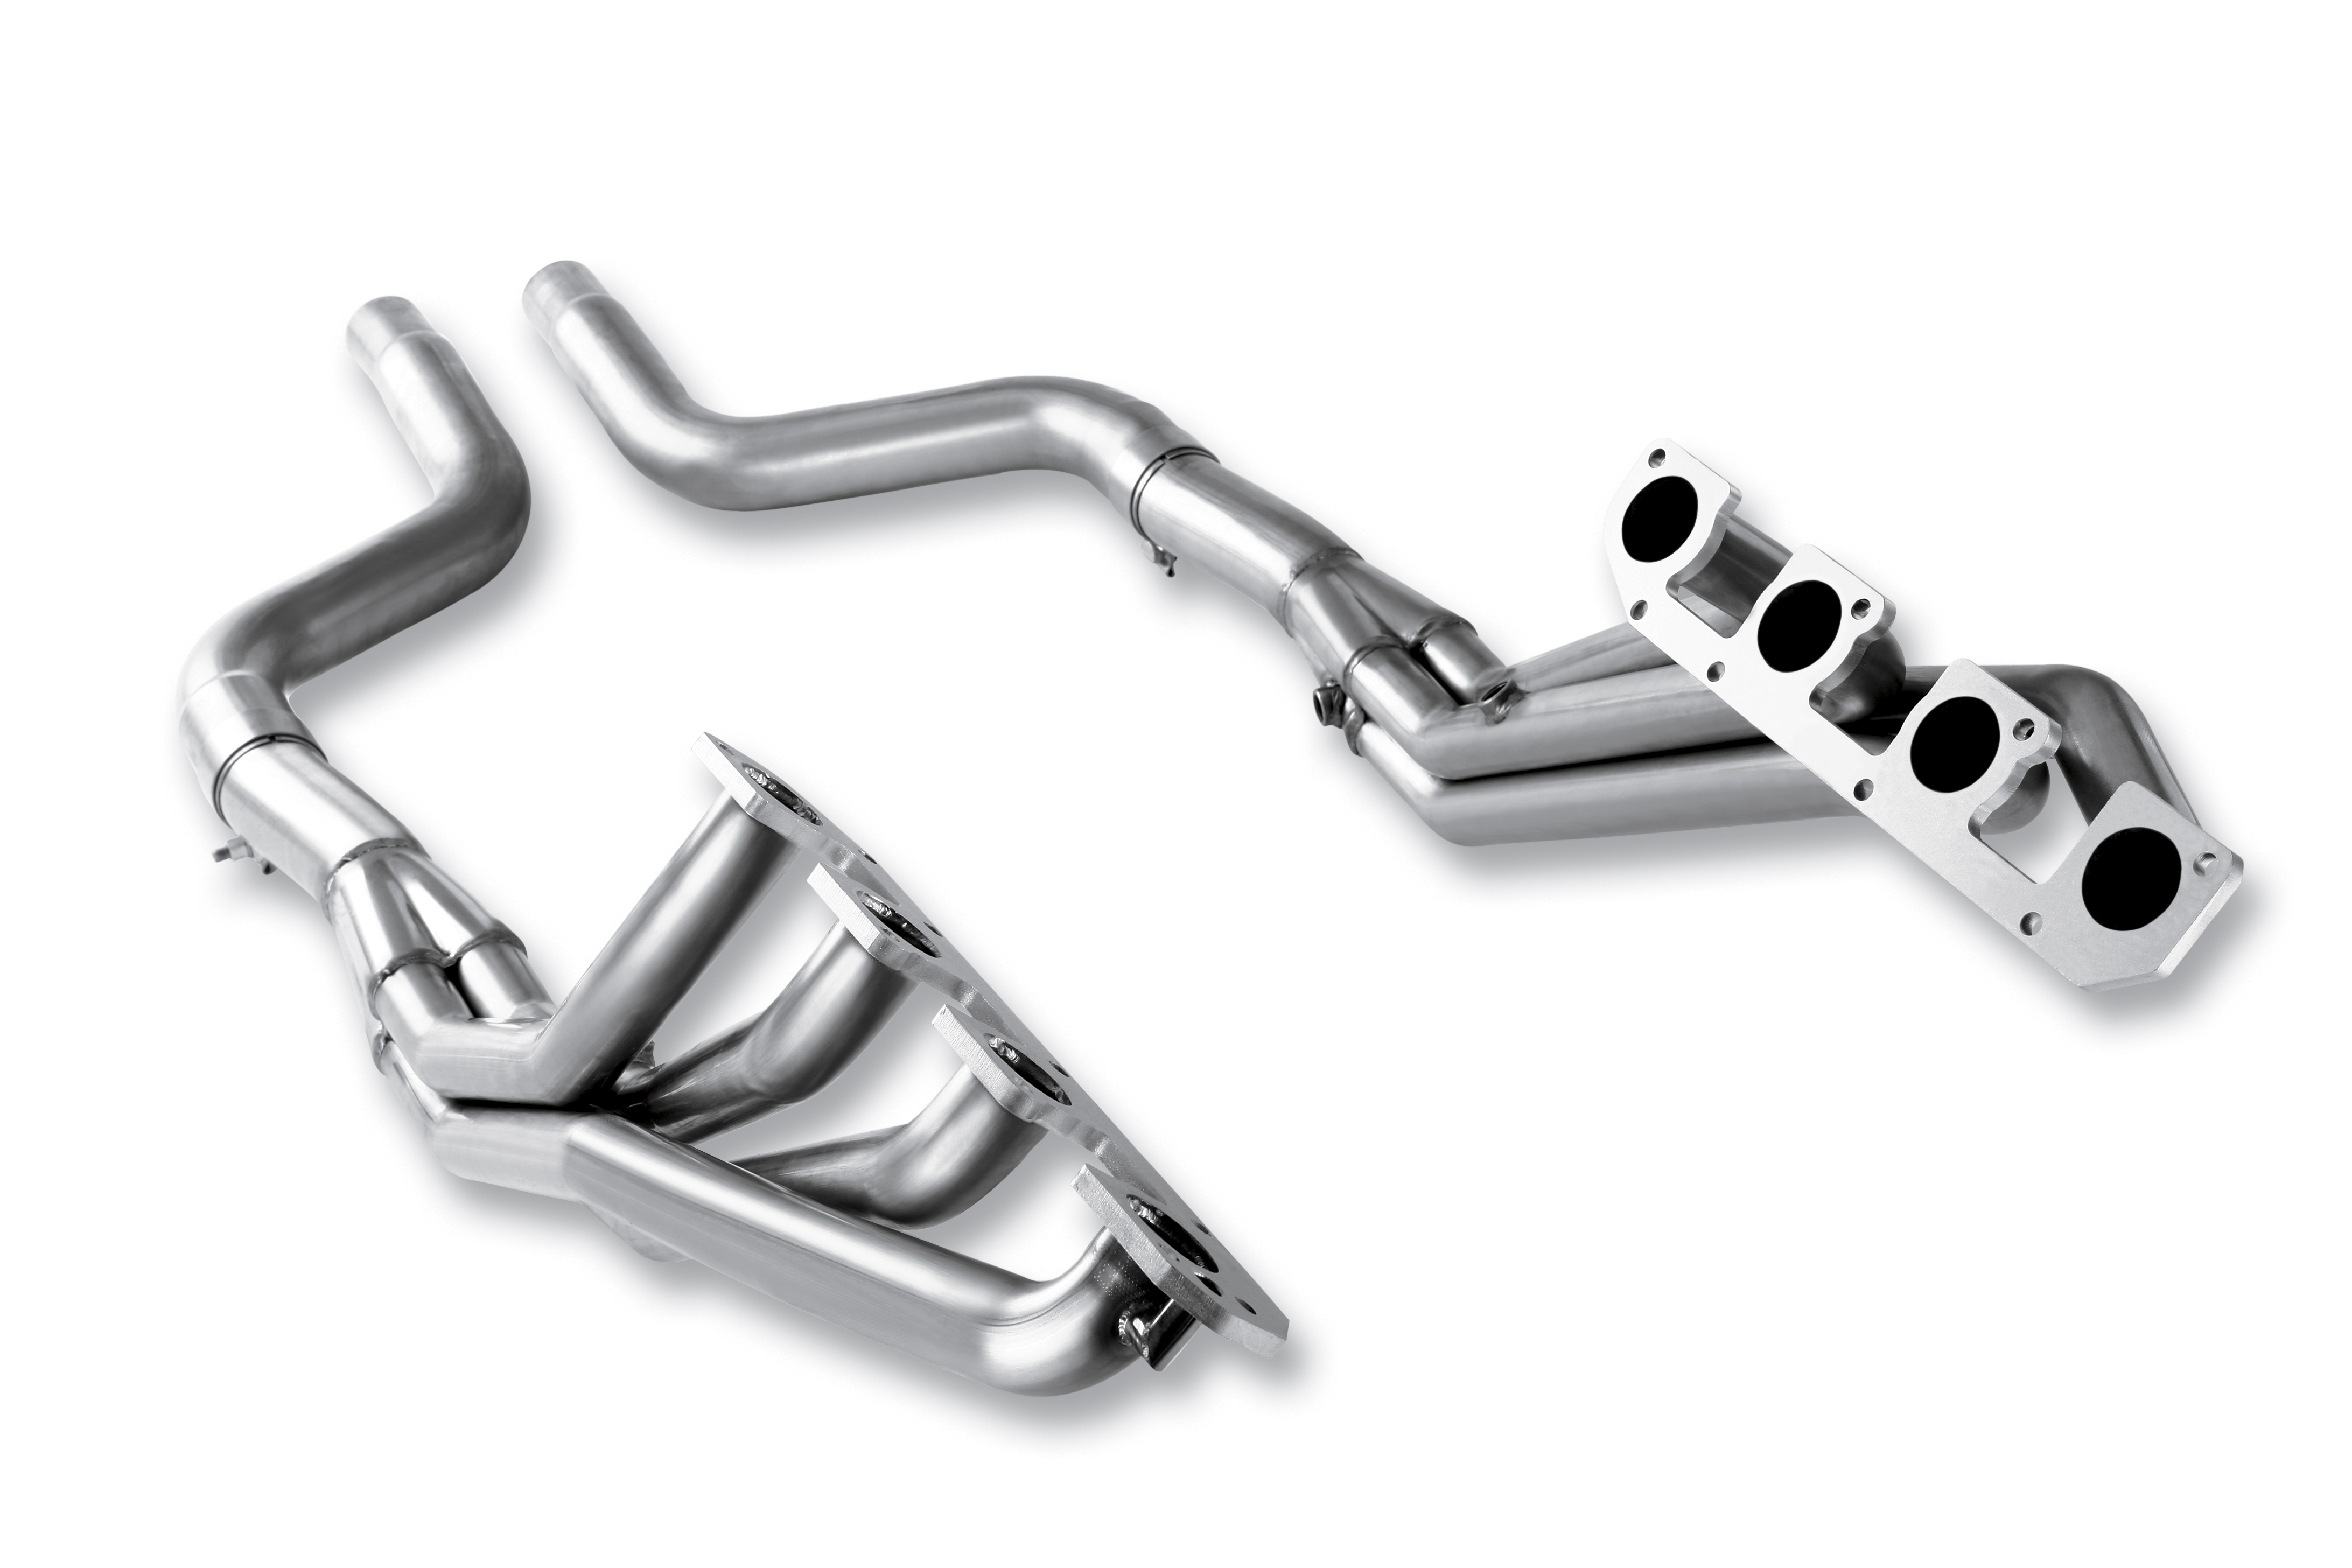 Dodge Magnum Rt 5.7l V8 2005-2008 Borla Long Tube Exhaust Headers (offroad Only)